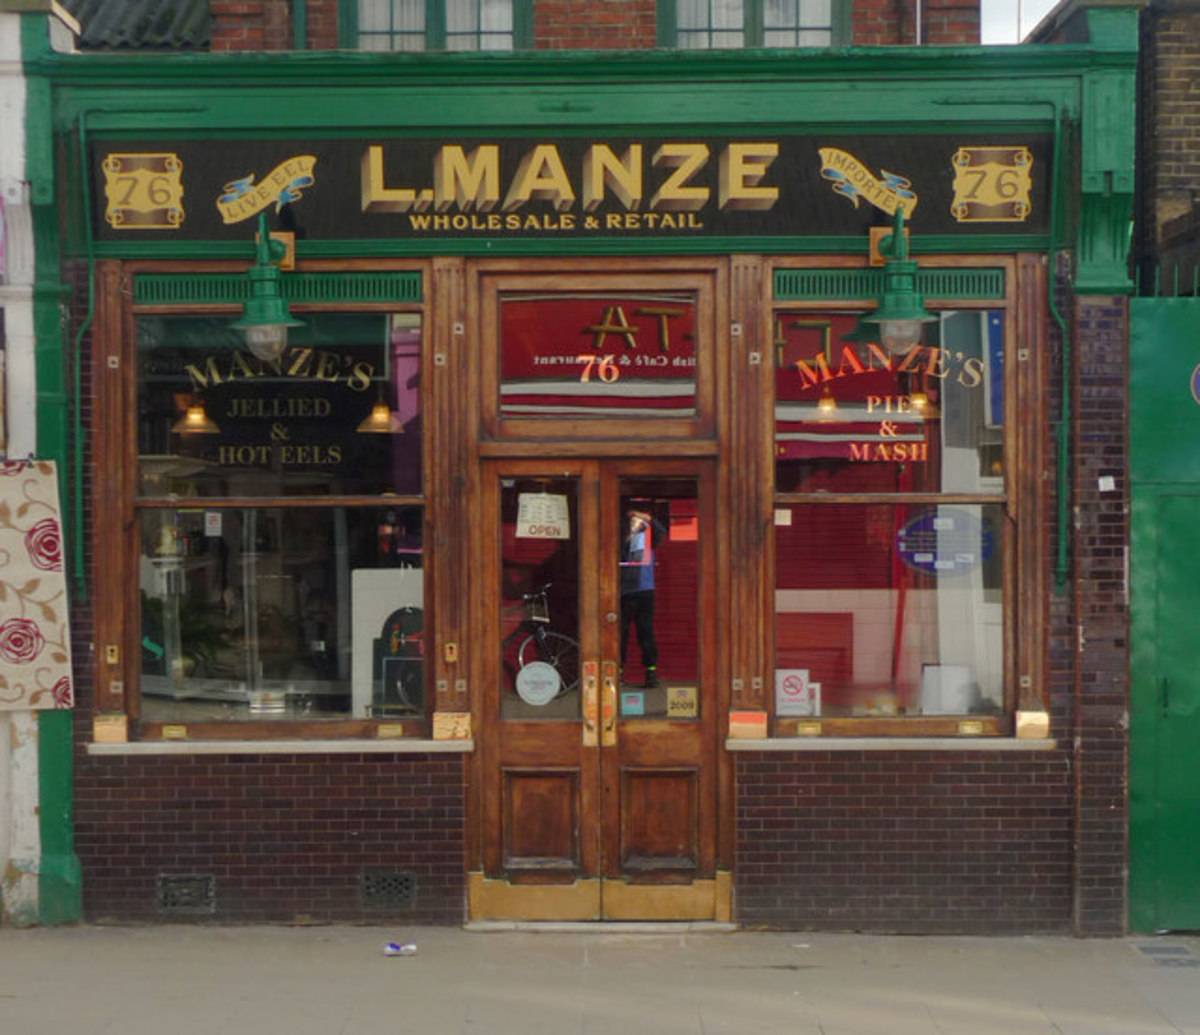 L. Manze Pie and Mash and Liquor shop - Londons oldest Pie and Mash shop